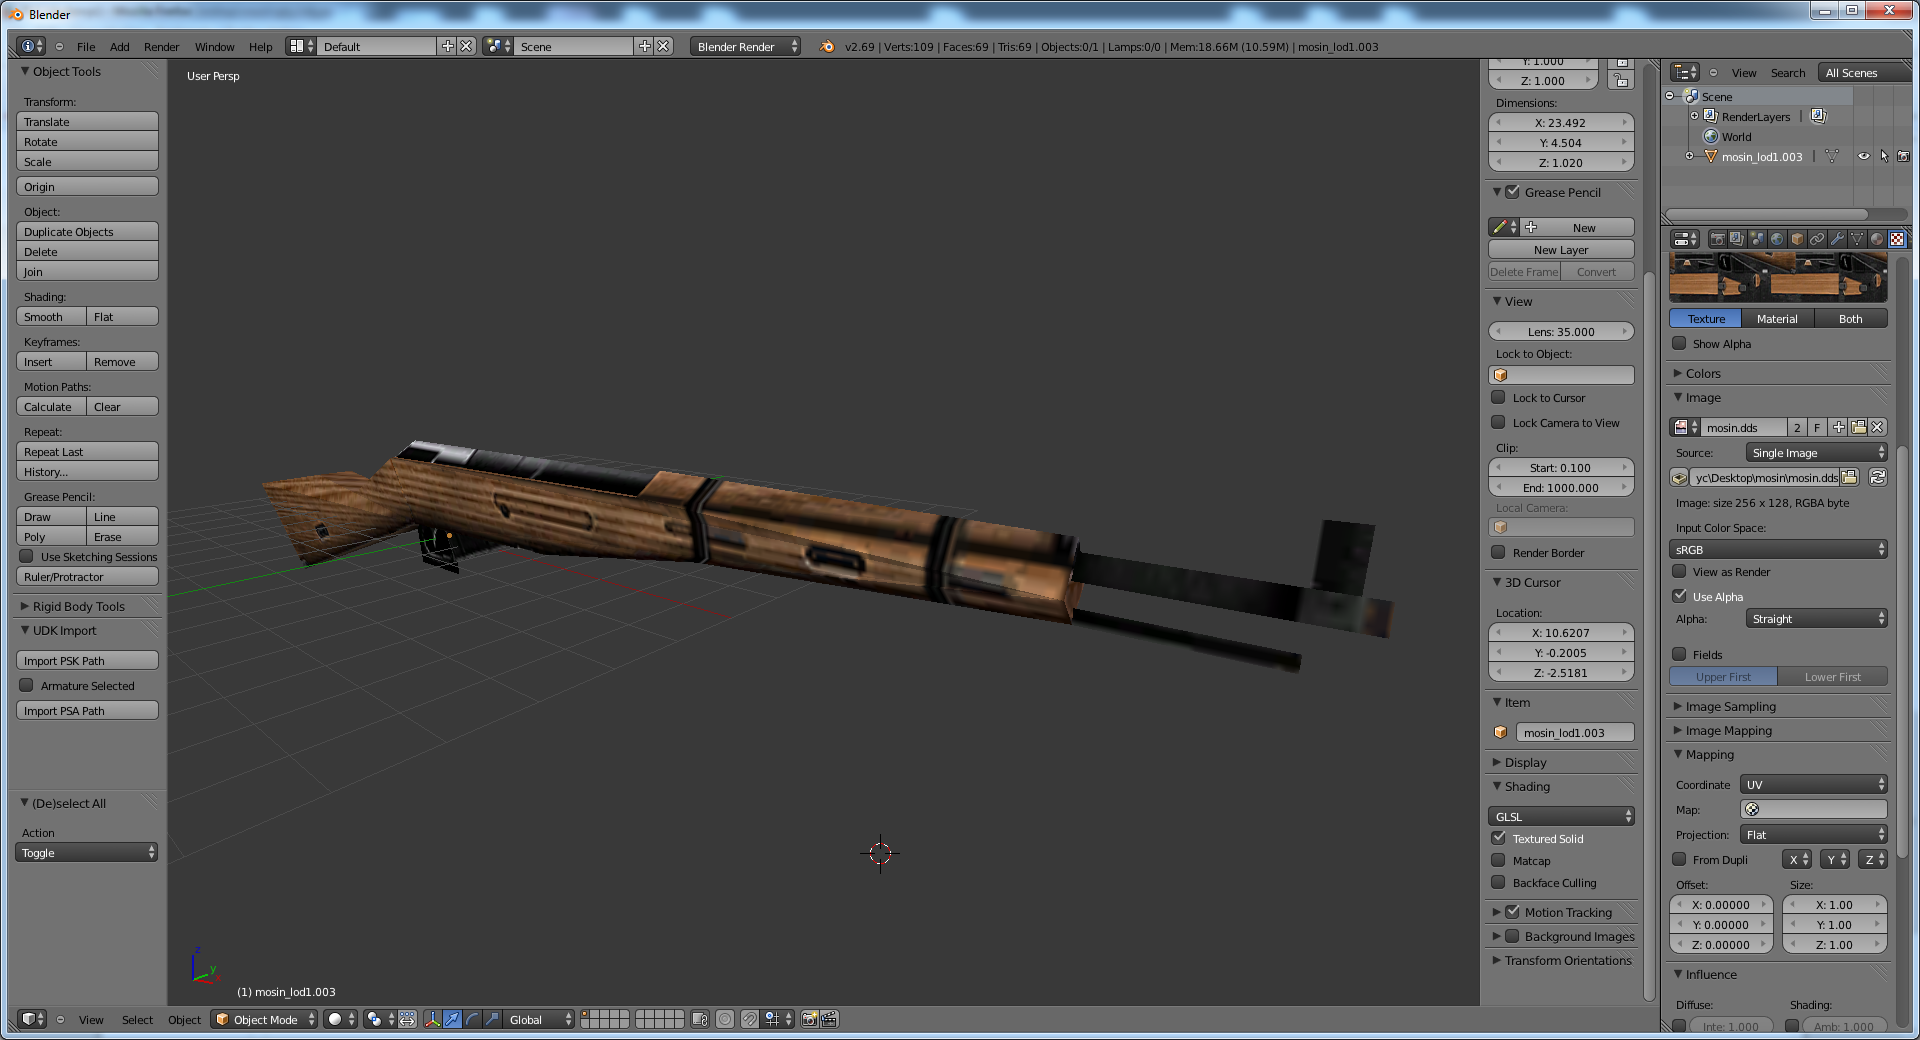 Mosin_Dumped_UV